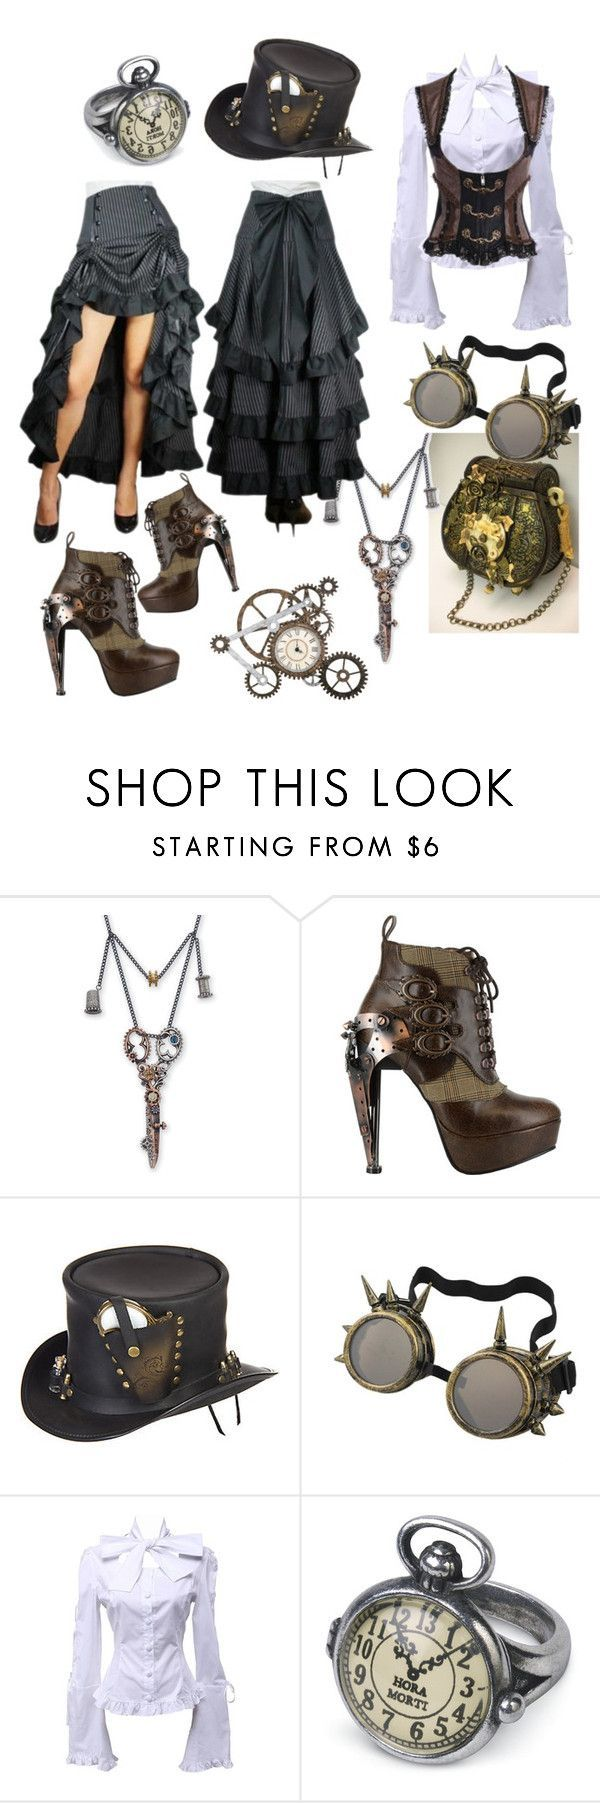 """Steampunk"" by iidapollari ❤ liked on Polyvore featuring HADES and Overland Sheepskin C"